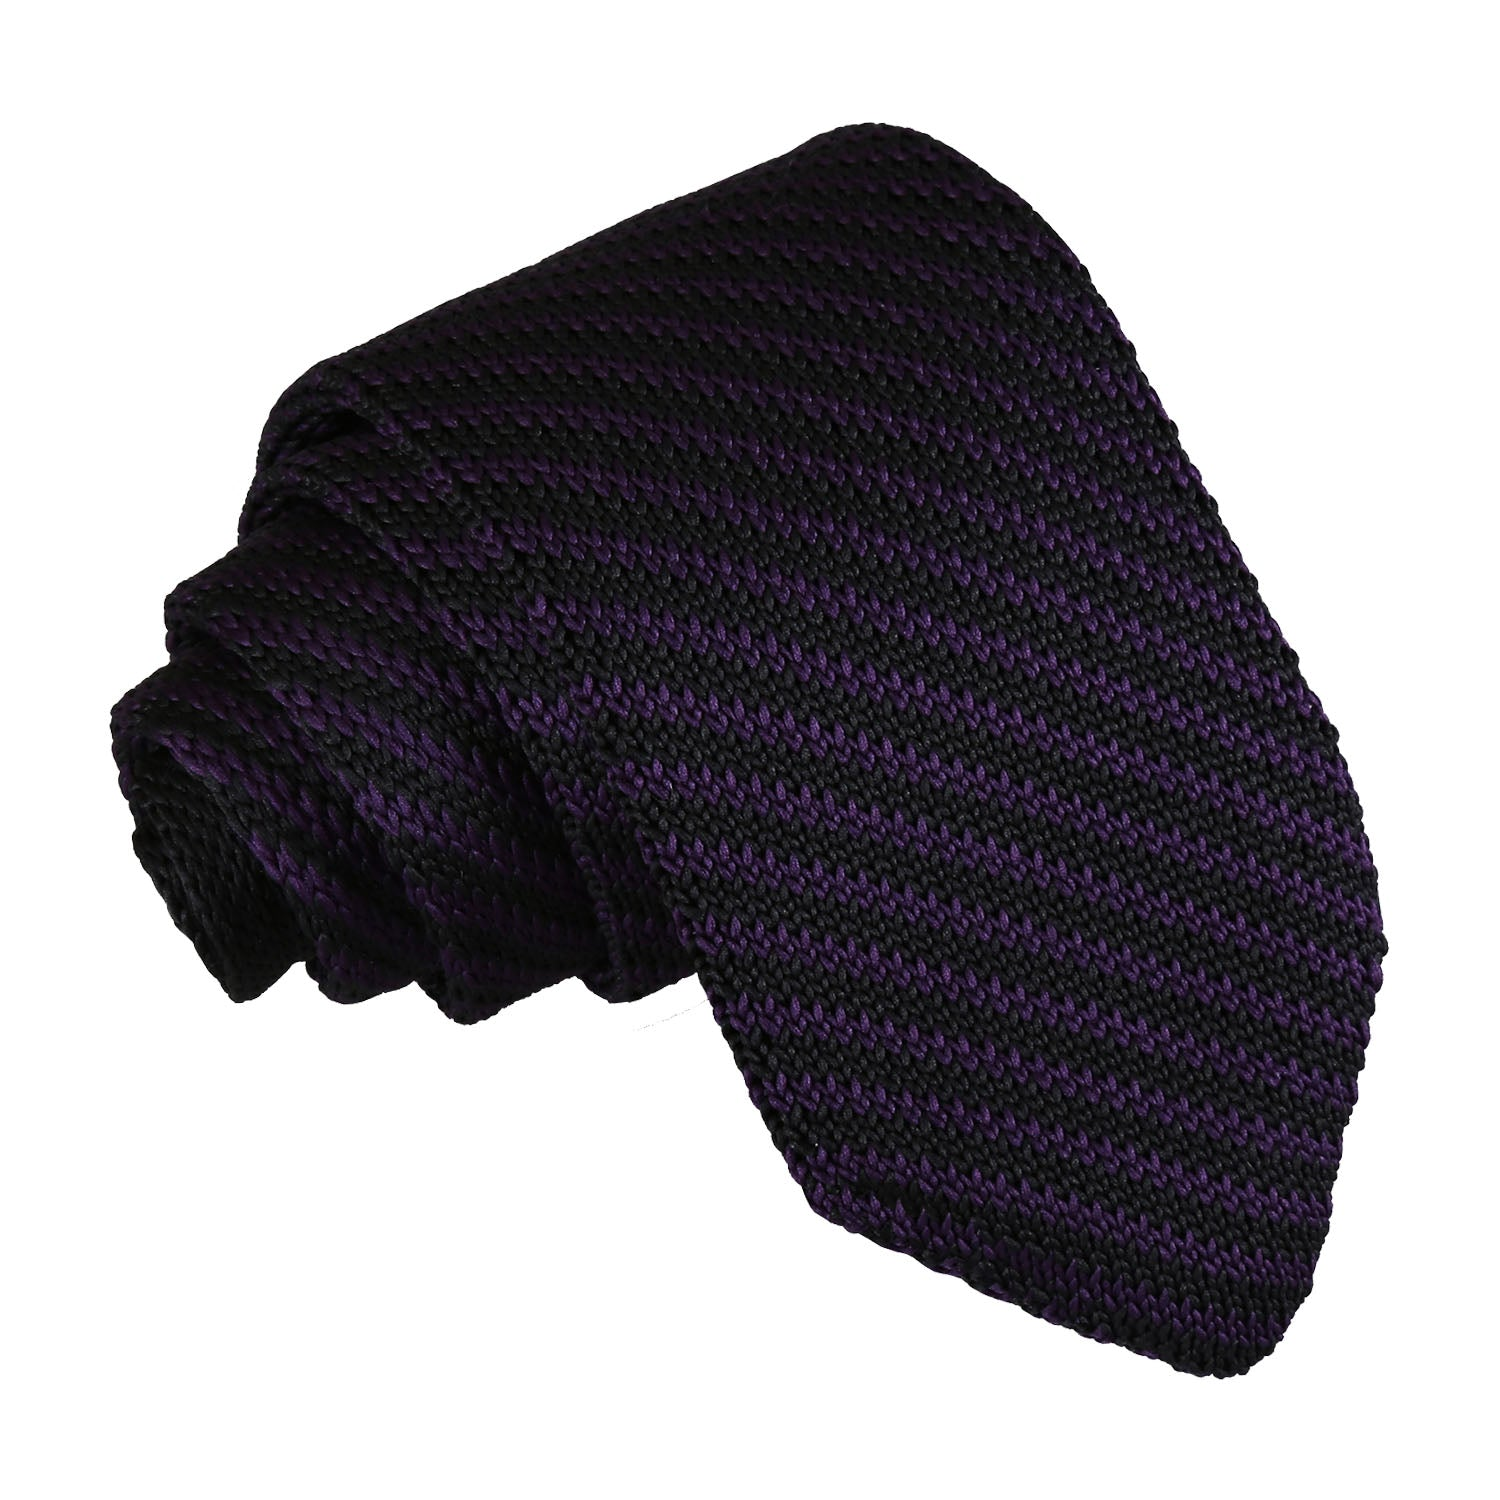 Diagonal Stripe Knitted Slim Tie - Black & Purple, Clothing & Accessories by Gifts24-7